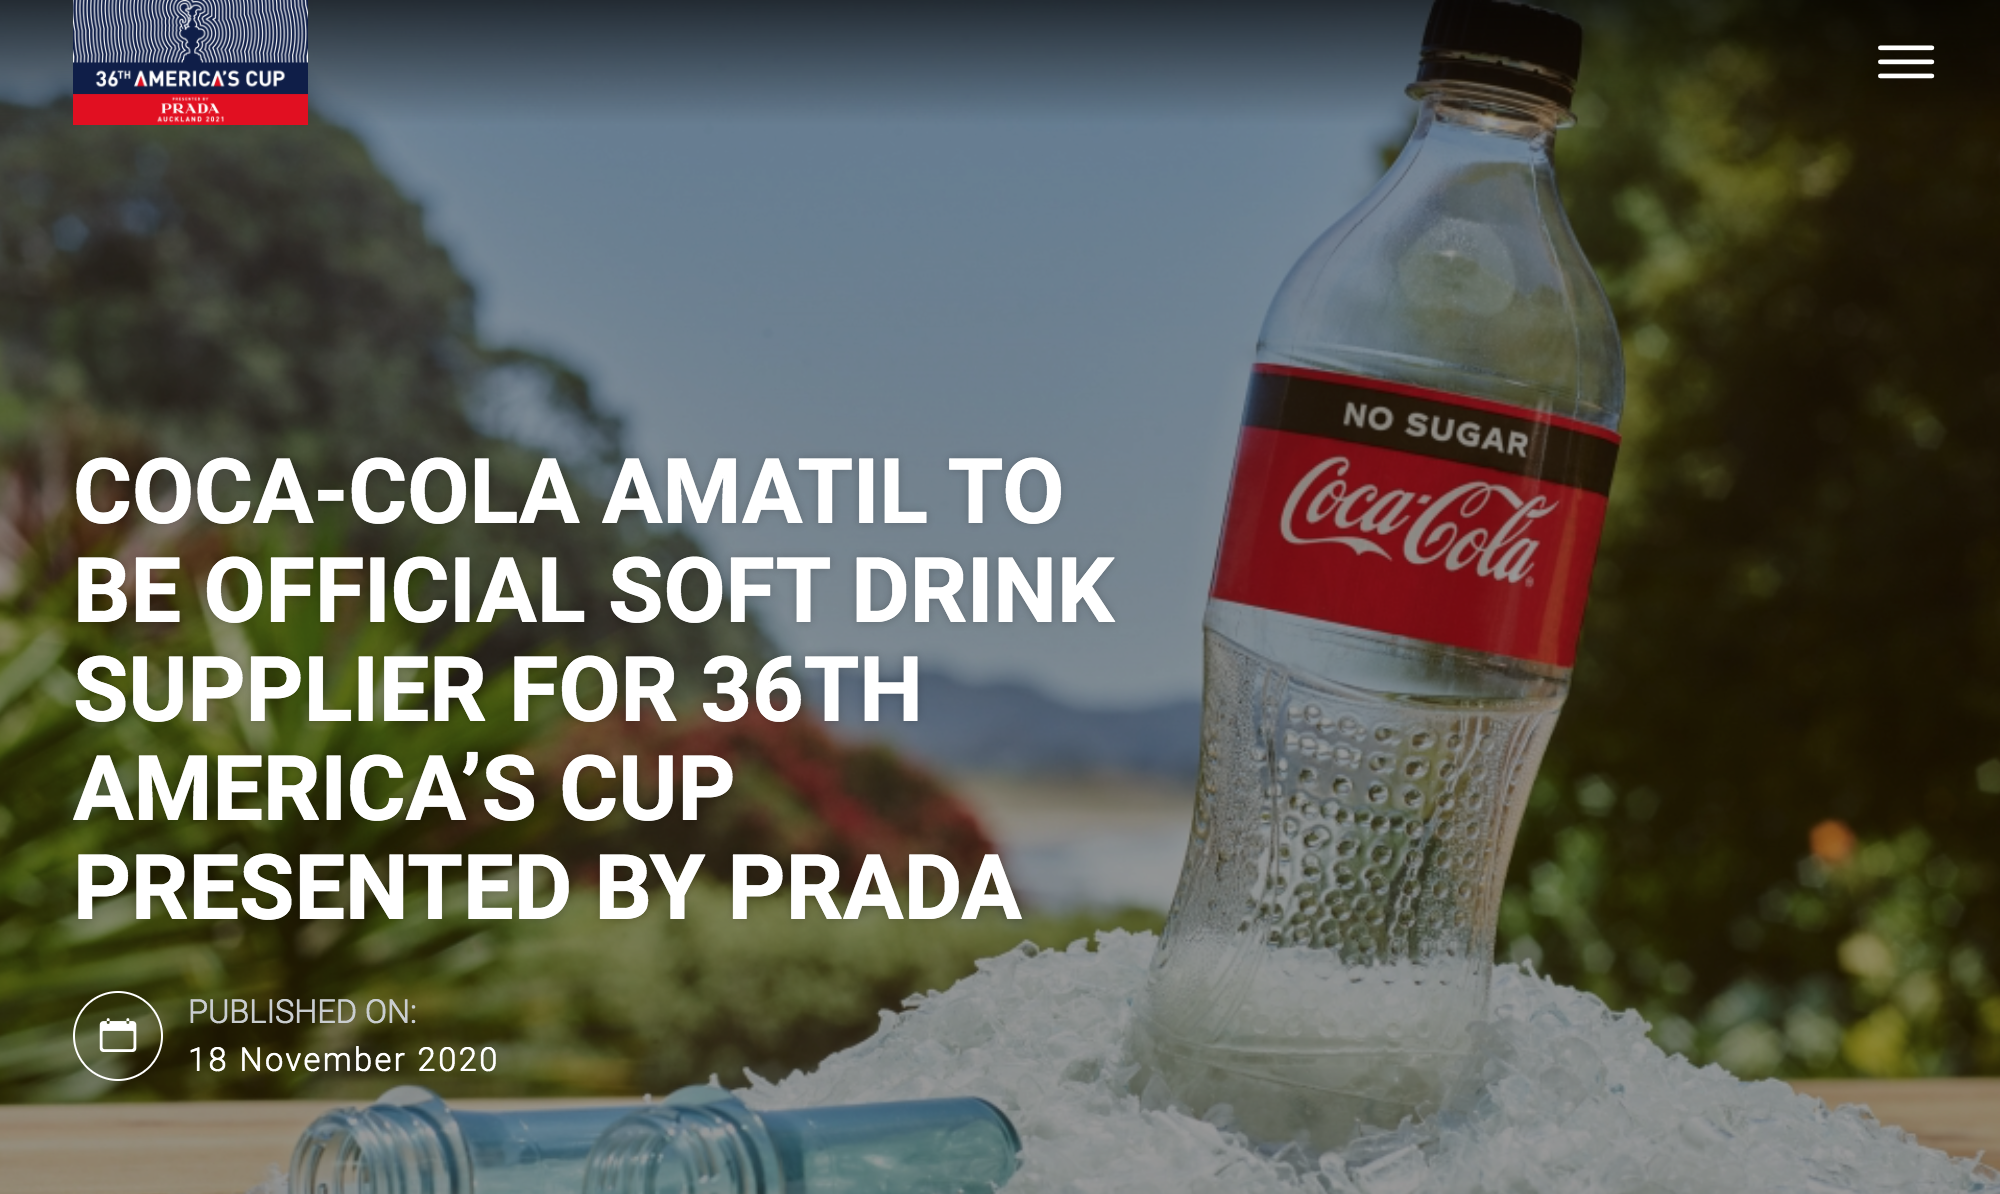 America's Cup News - Coca Cola Official Sponsor